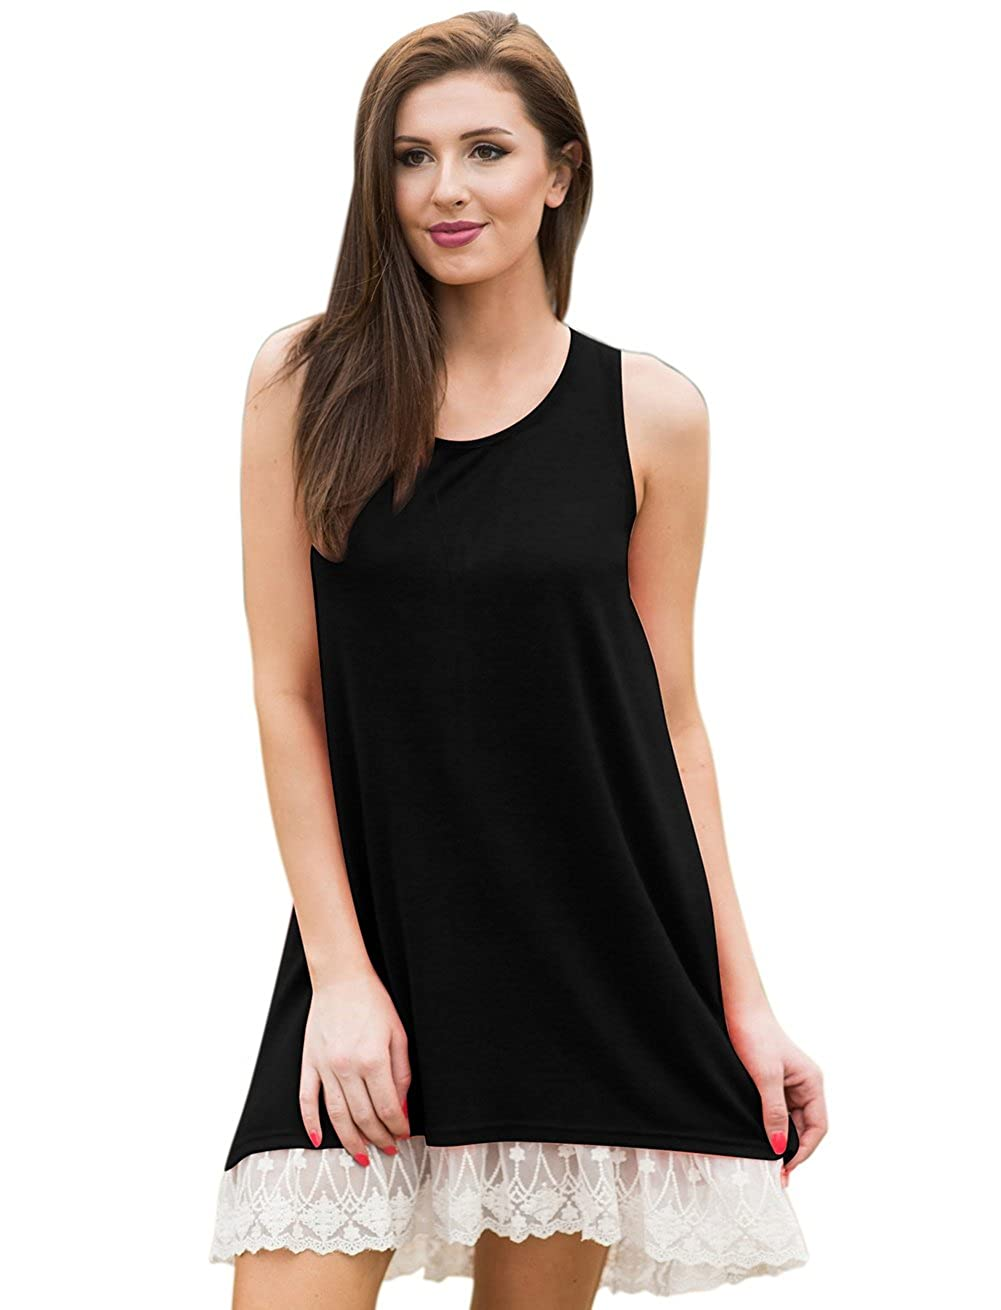 166f3e1616b4 Feature:Lace-trimmed hem,Sleeveless,summer dress, Above Knee Length,Solid  Pattern, Casual Loose Fit, • It is a summer mini dress, but also a long  tunic ...